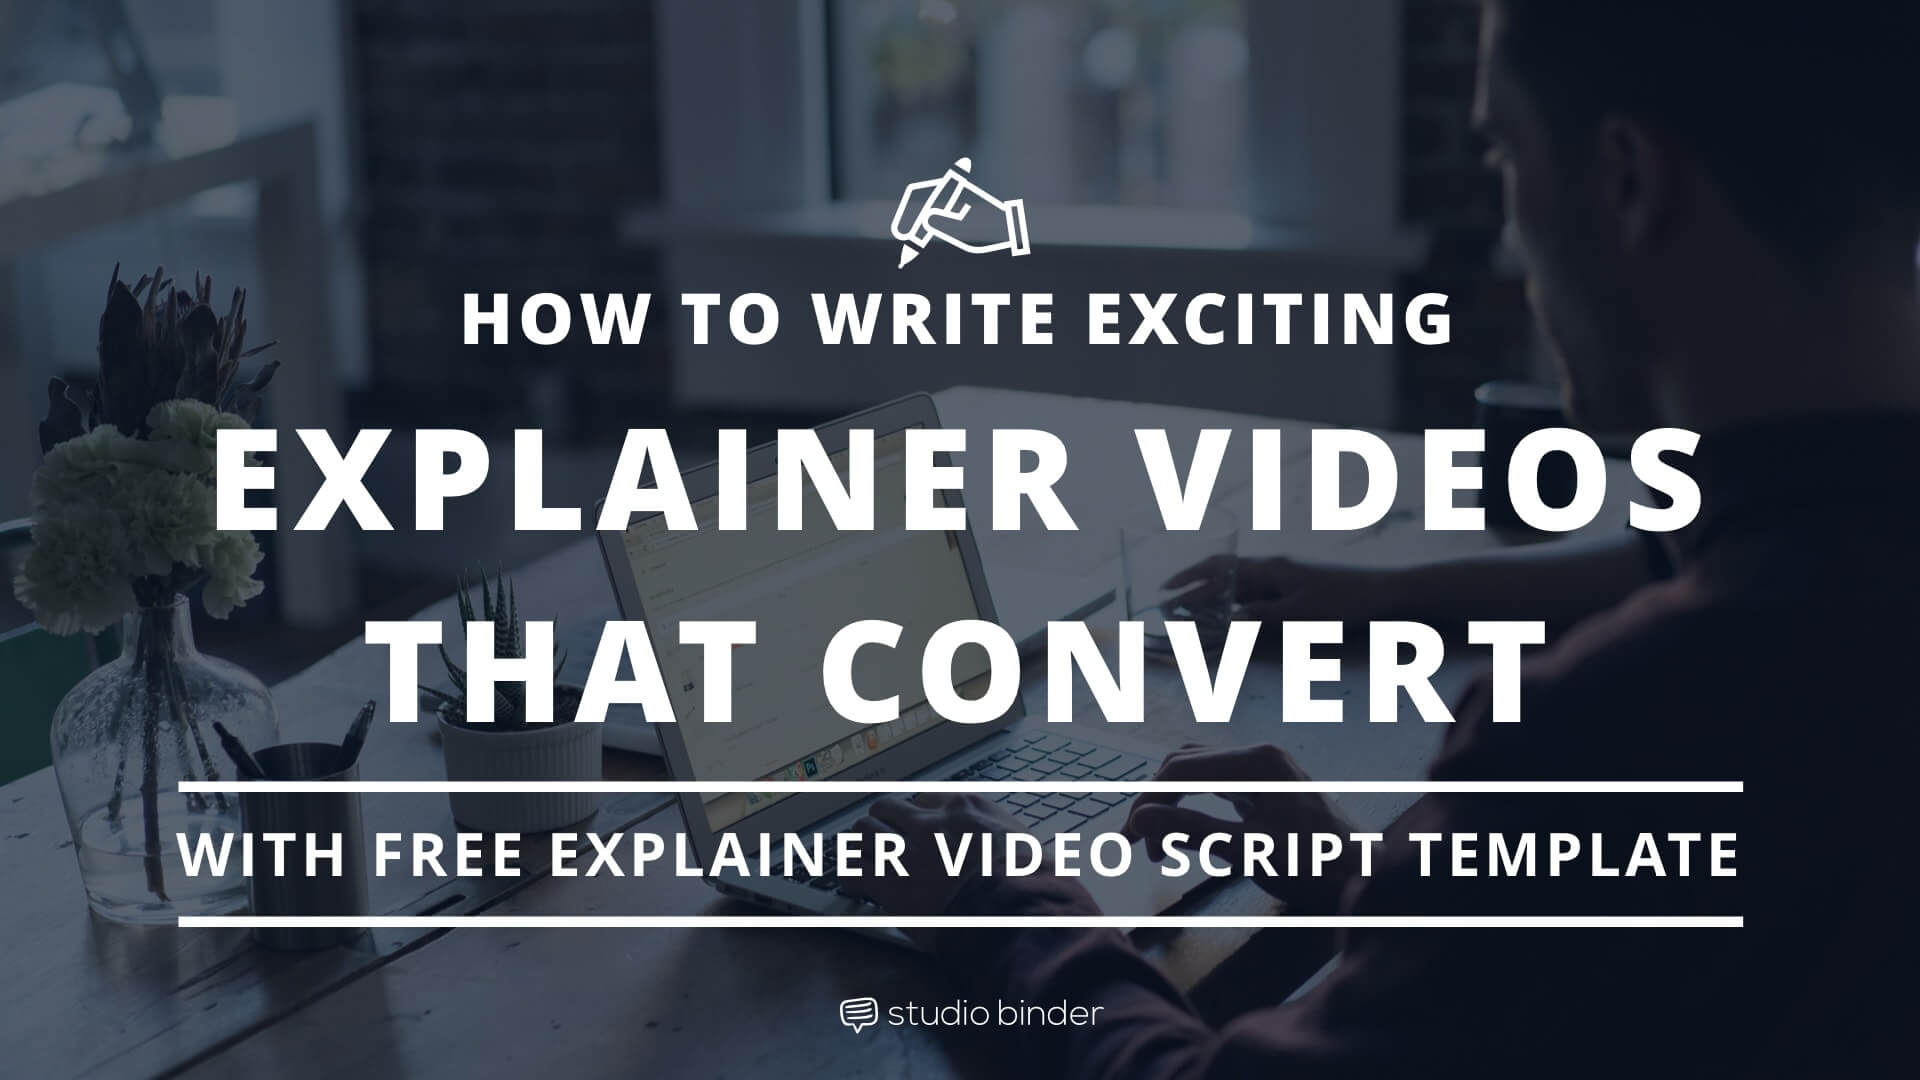 How to Write Exciting Explainer Explainer Videos That Convert (with FREE Explainer Video Script Template) - Social - StudioBinder